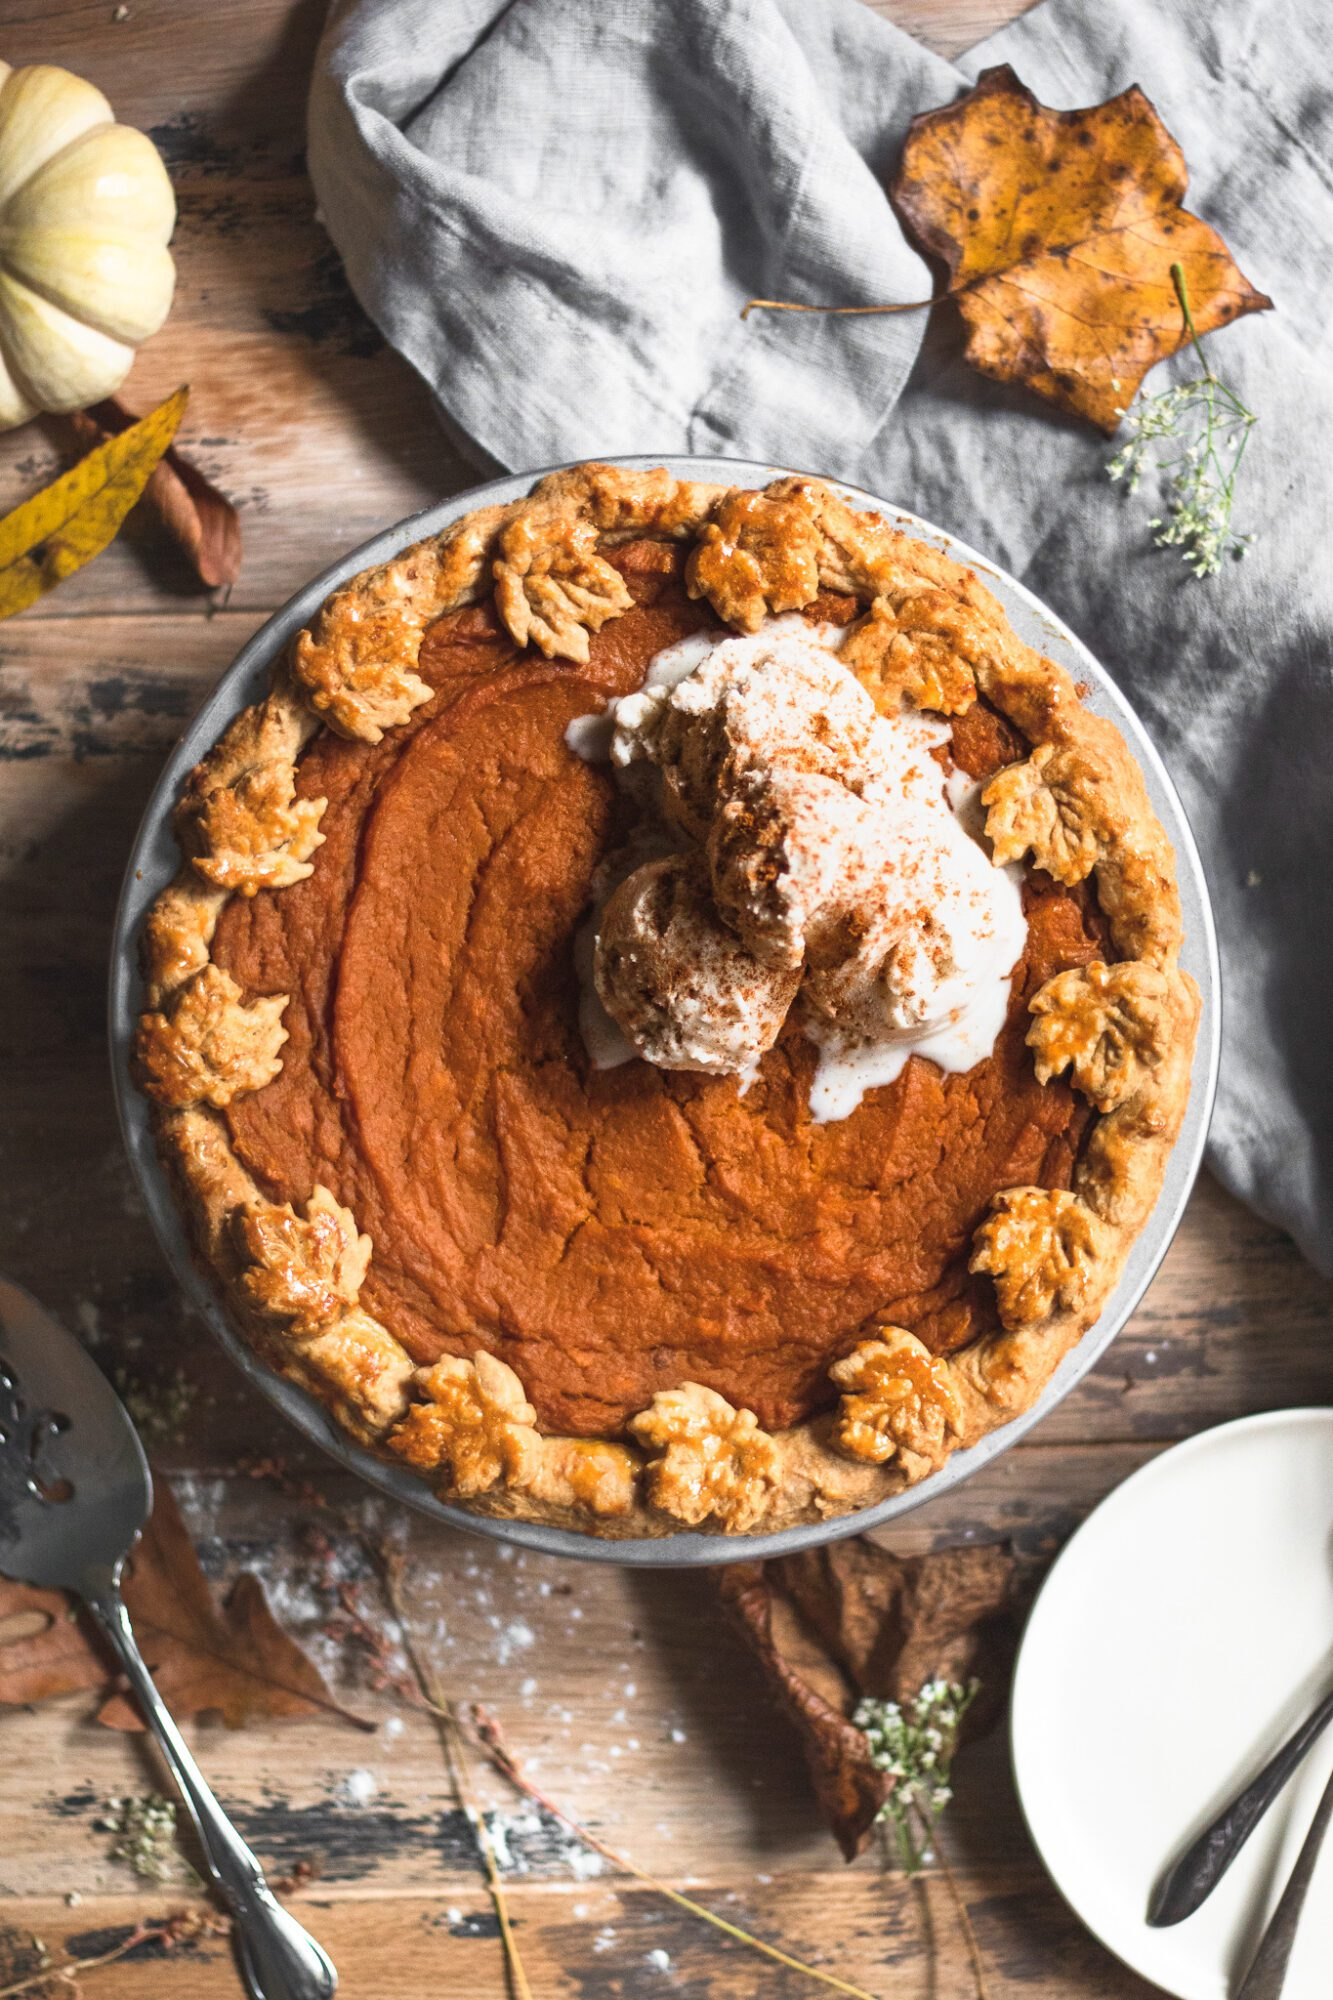 baked sweet potato pie with ice cream